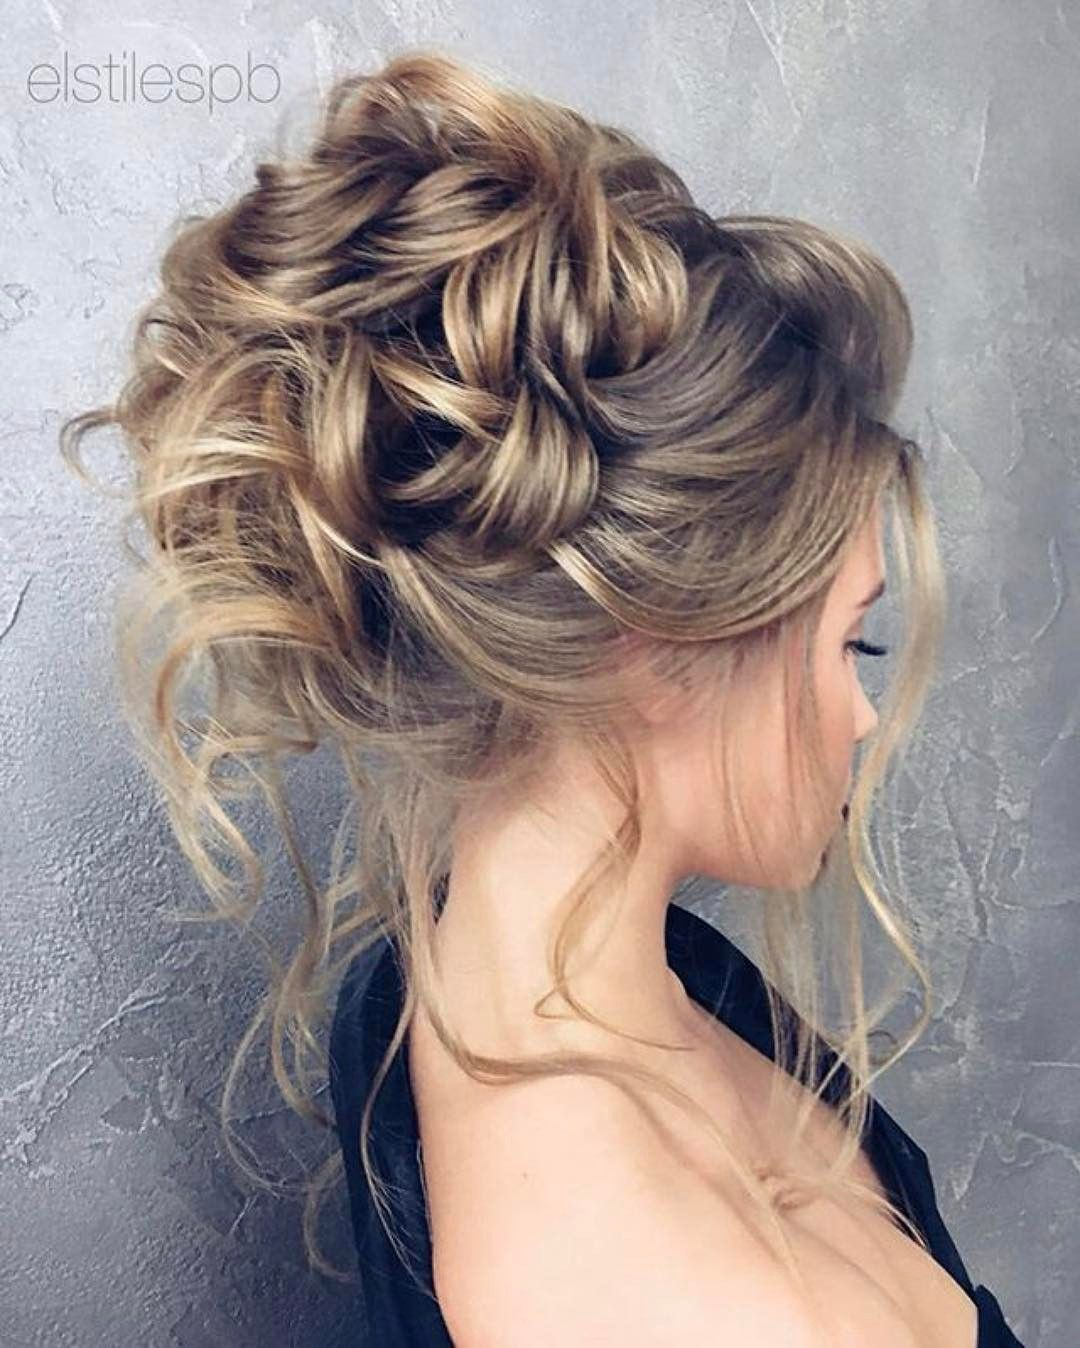 Beautiful Updo Hairstyles Upstyles Elegant Updo Chignon Bridal Updo Hairstyles Swept Back Hairstyles Wedding Messy Hair Updo Hair Styles Messy Hairstyles